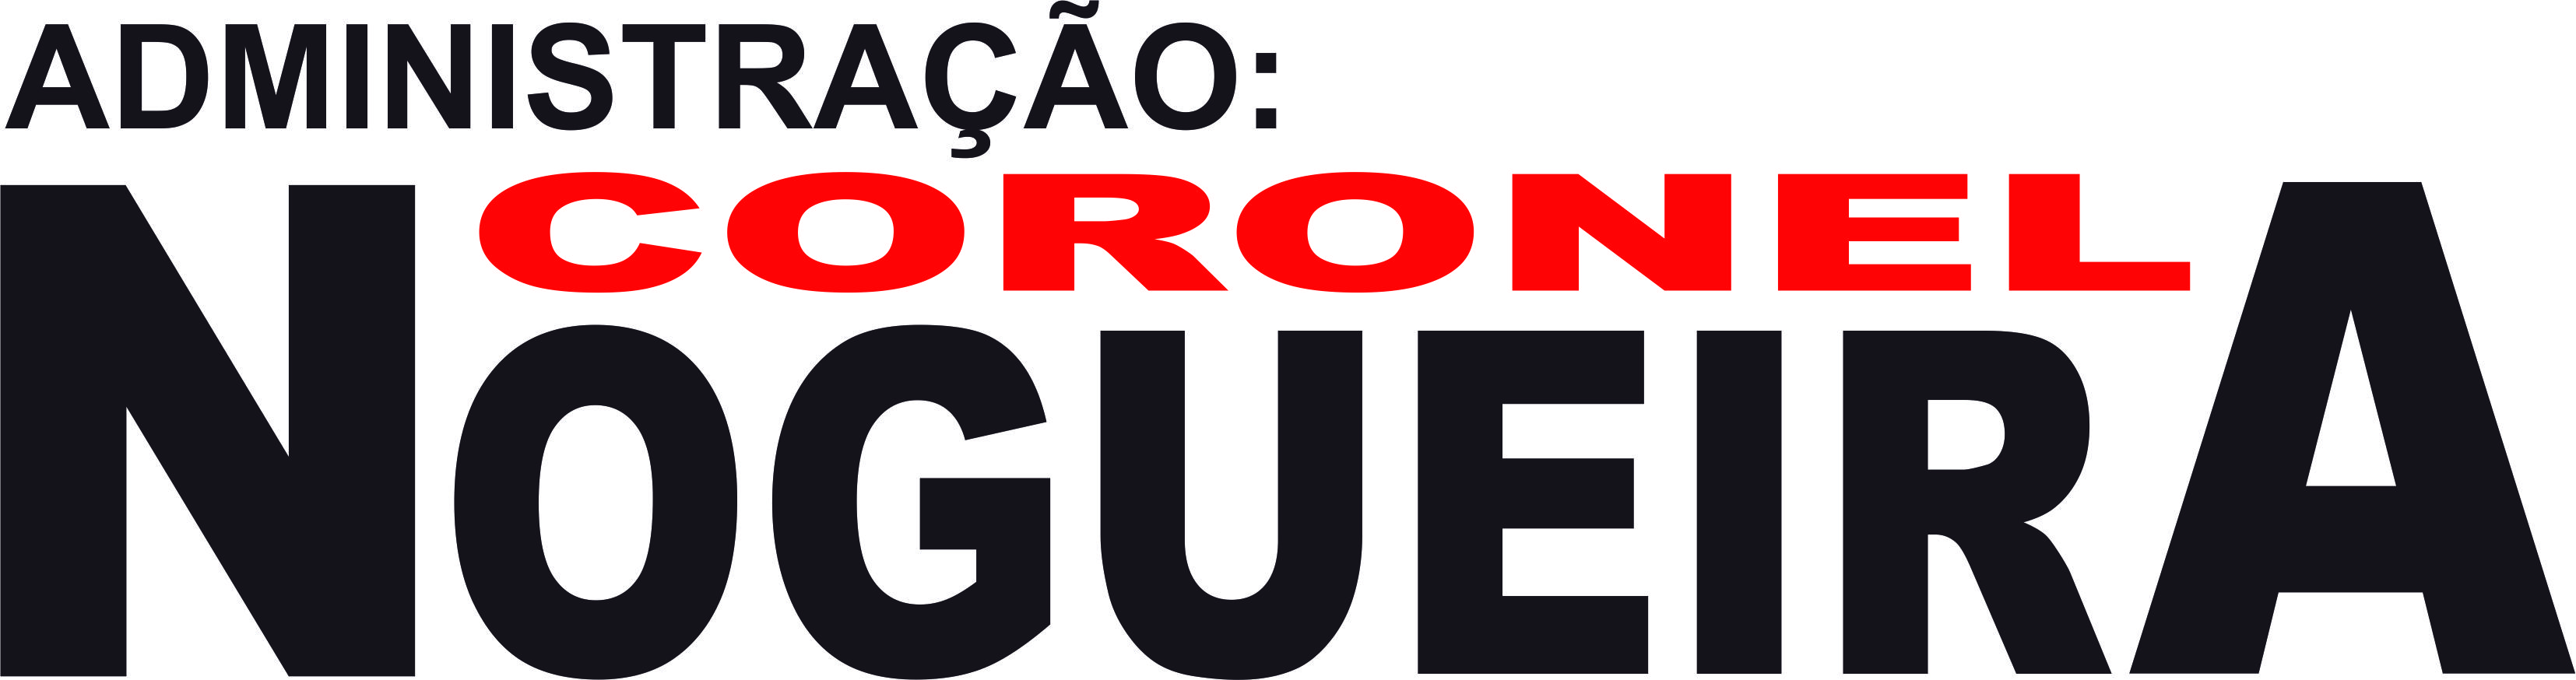 LOGO DO PRESIDENTE JPG